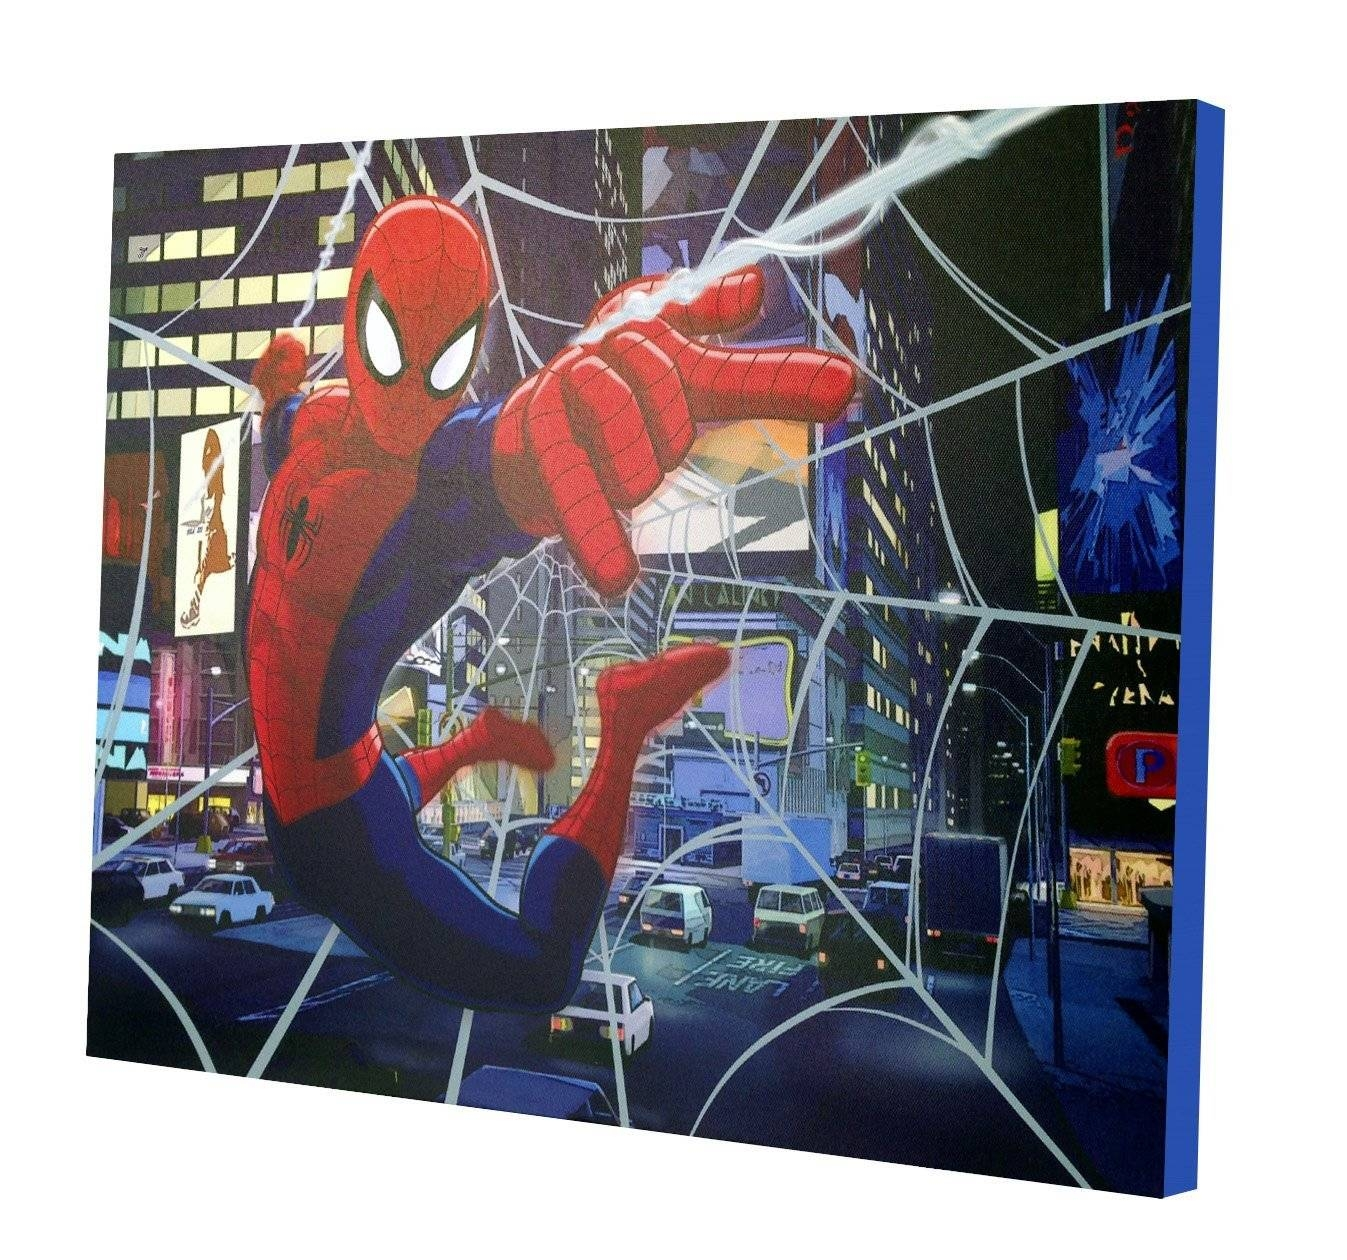 Marvel Spiderman Light Up Canvas Wall Art With Bonus Led Lights Regarding Most Up To Date 3D Wall Art Walmart (View 6 of 20)